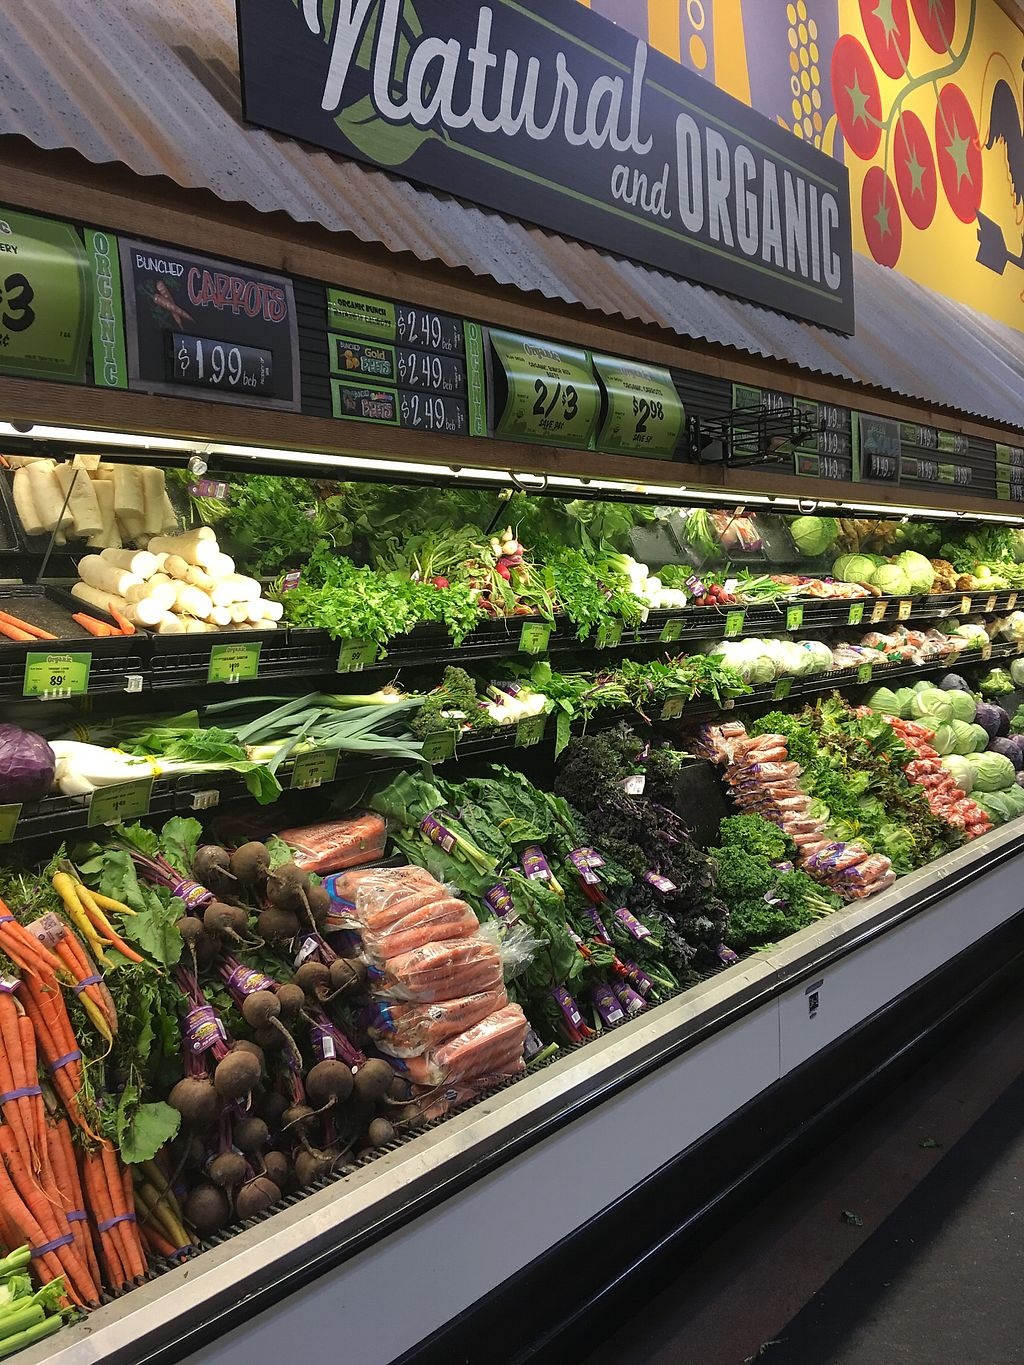 """Photo of Sprouts Farmers Market  by <a href=""""/members/profile/HeatherArmstrong"""">HeatherArmstrong</a> <br/>Produce  <br/> October 15, 2017  - <a href='/contact/abuse/image/101964/315624'>Report</a>"""